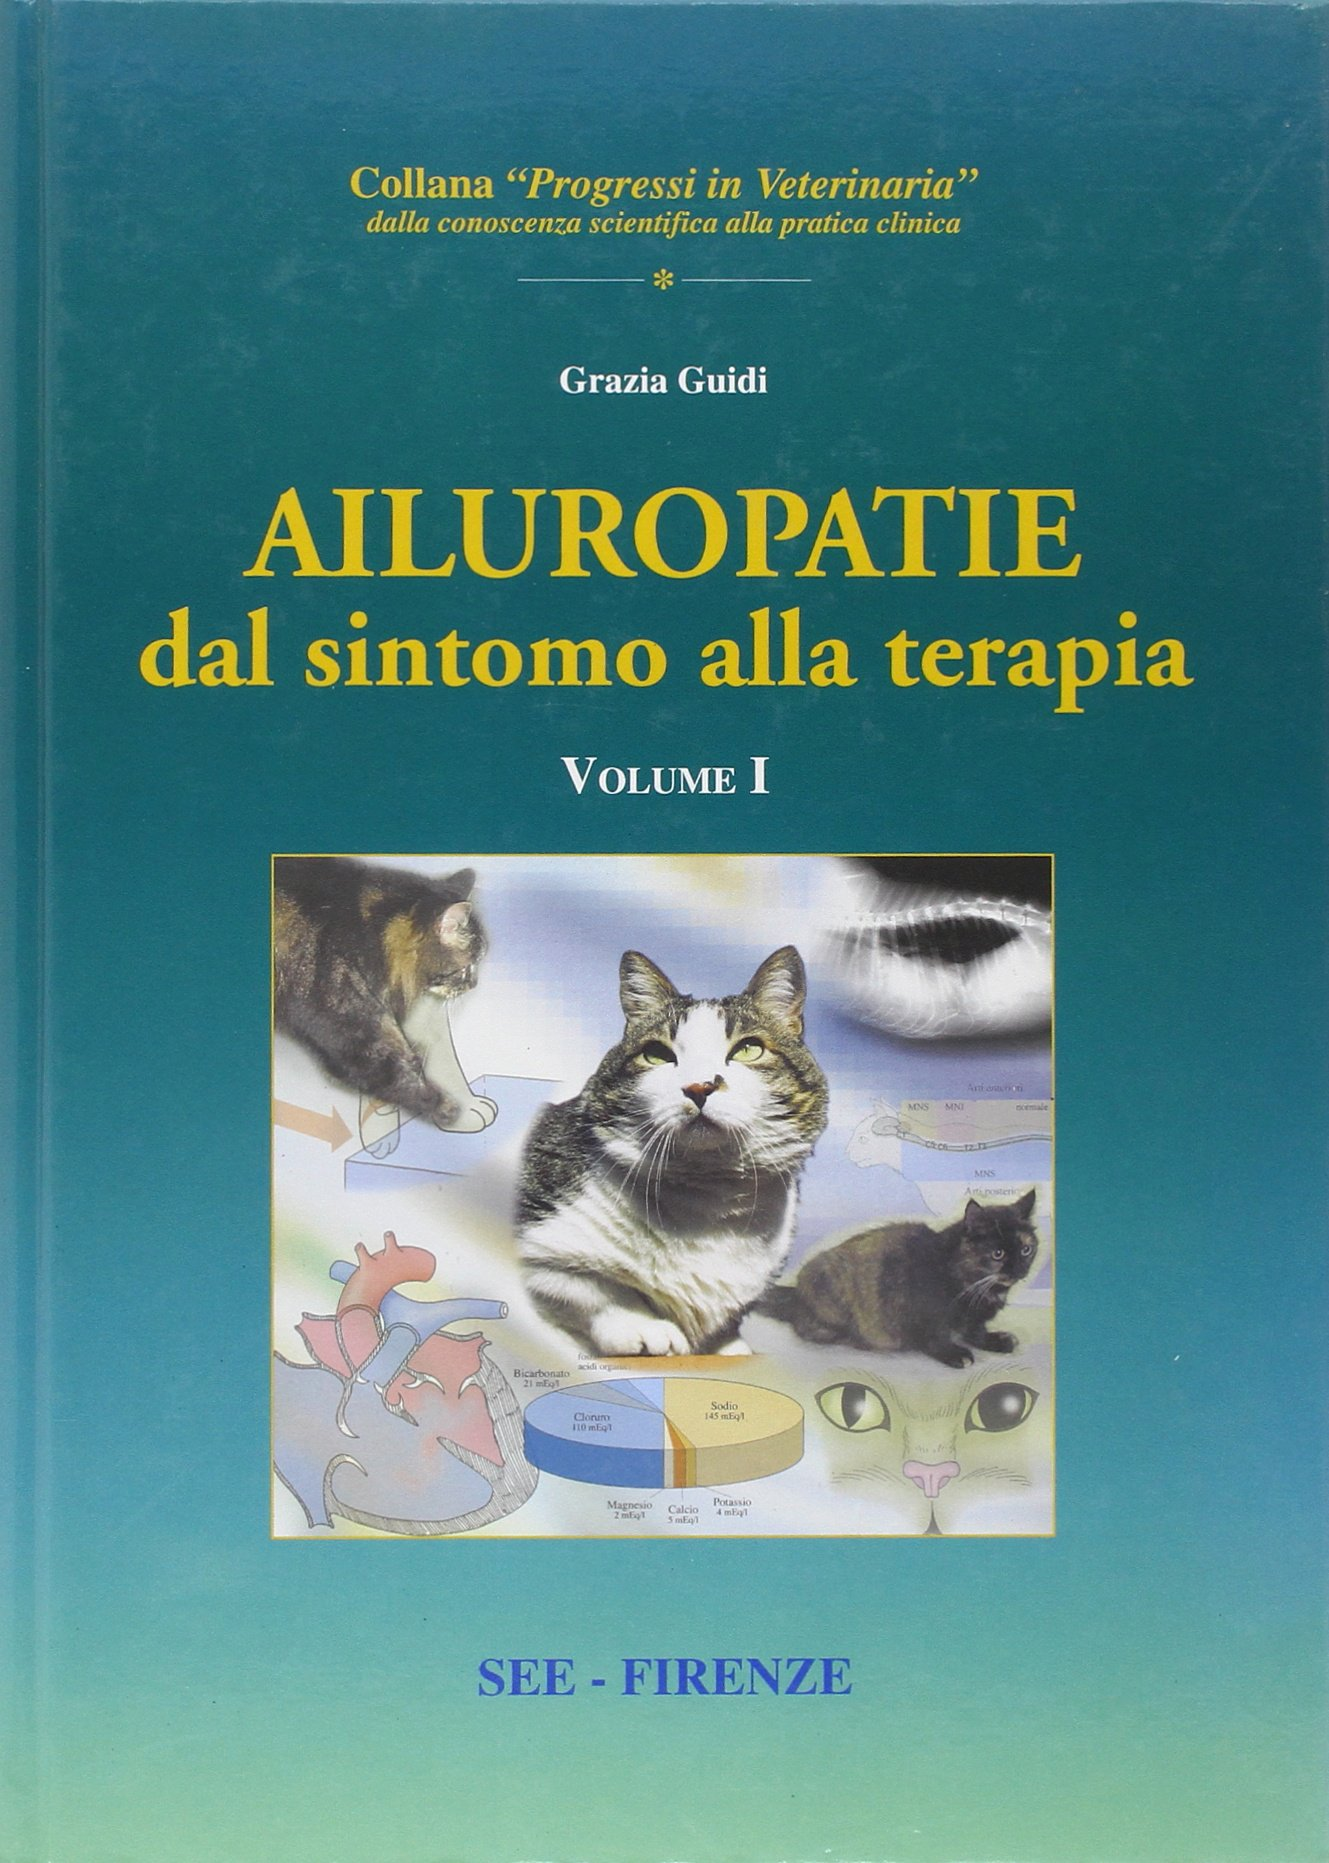 Ailuropatie: dal Sintomo alla Terapia. Vol. 1.: Grazia. Guidi: 9788884650948: Amazon.com: Books